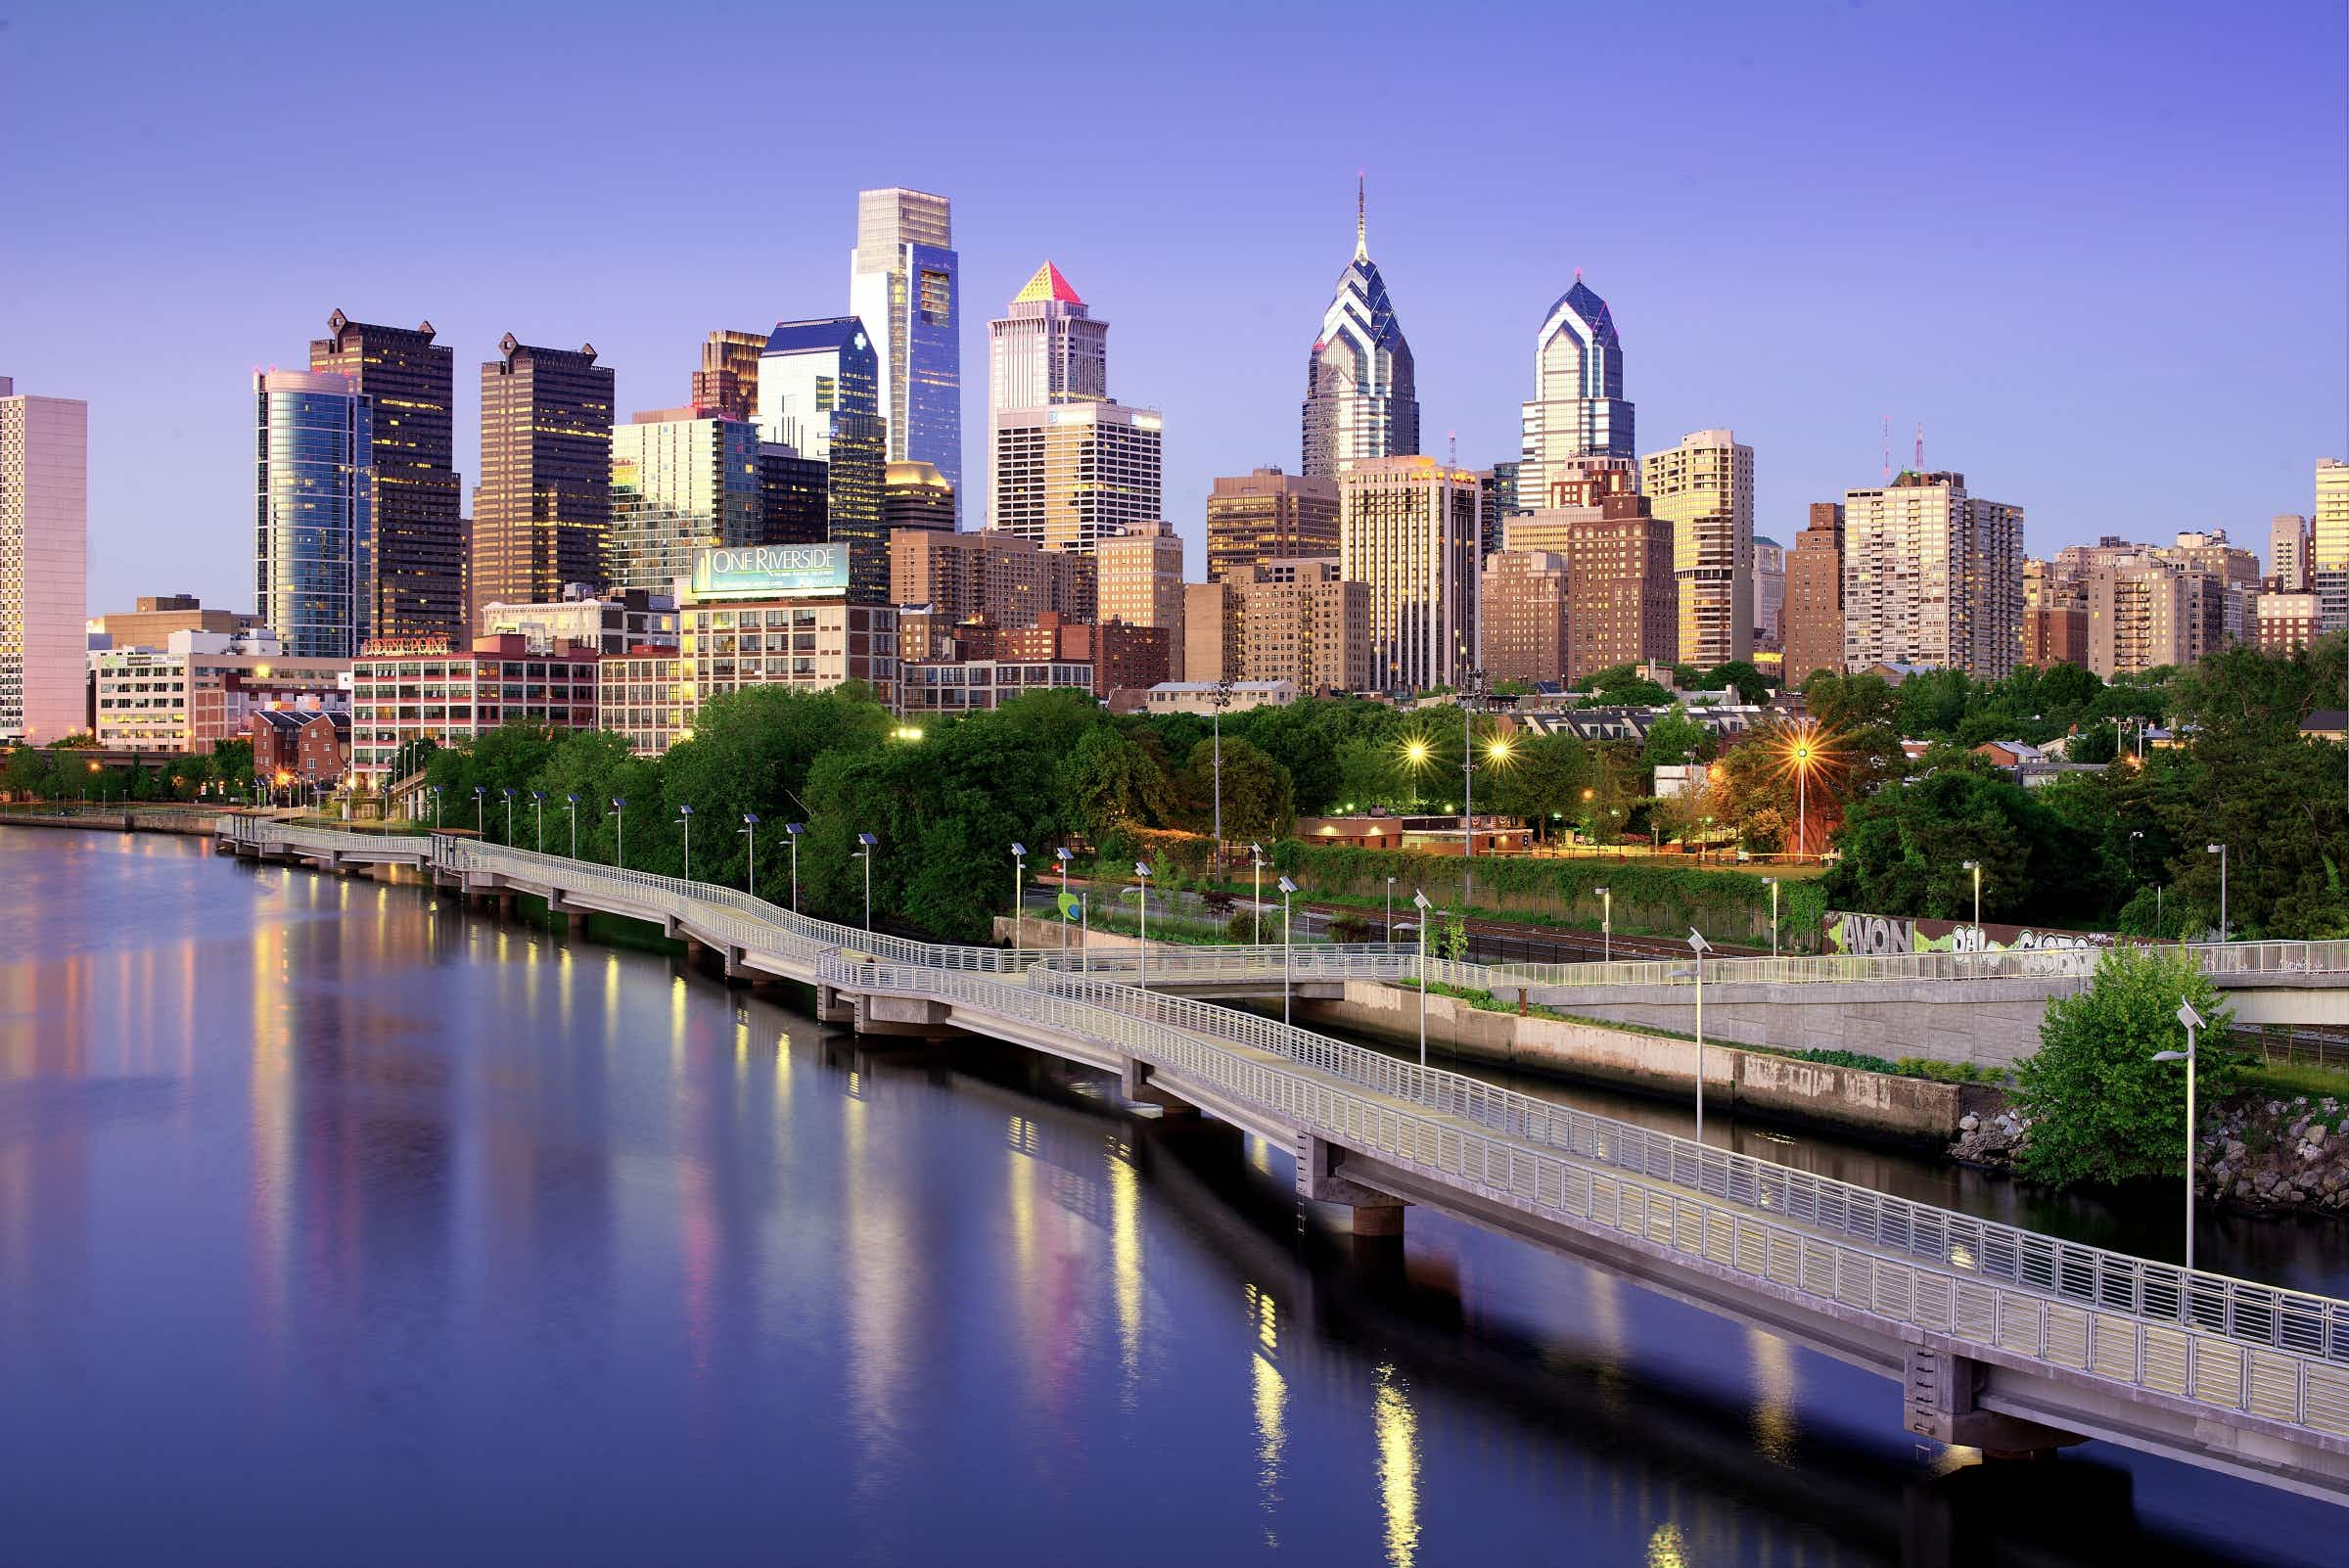 Philadelphia will be known as 'The City of Sisterly Love' for the remainder of 2020